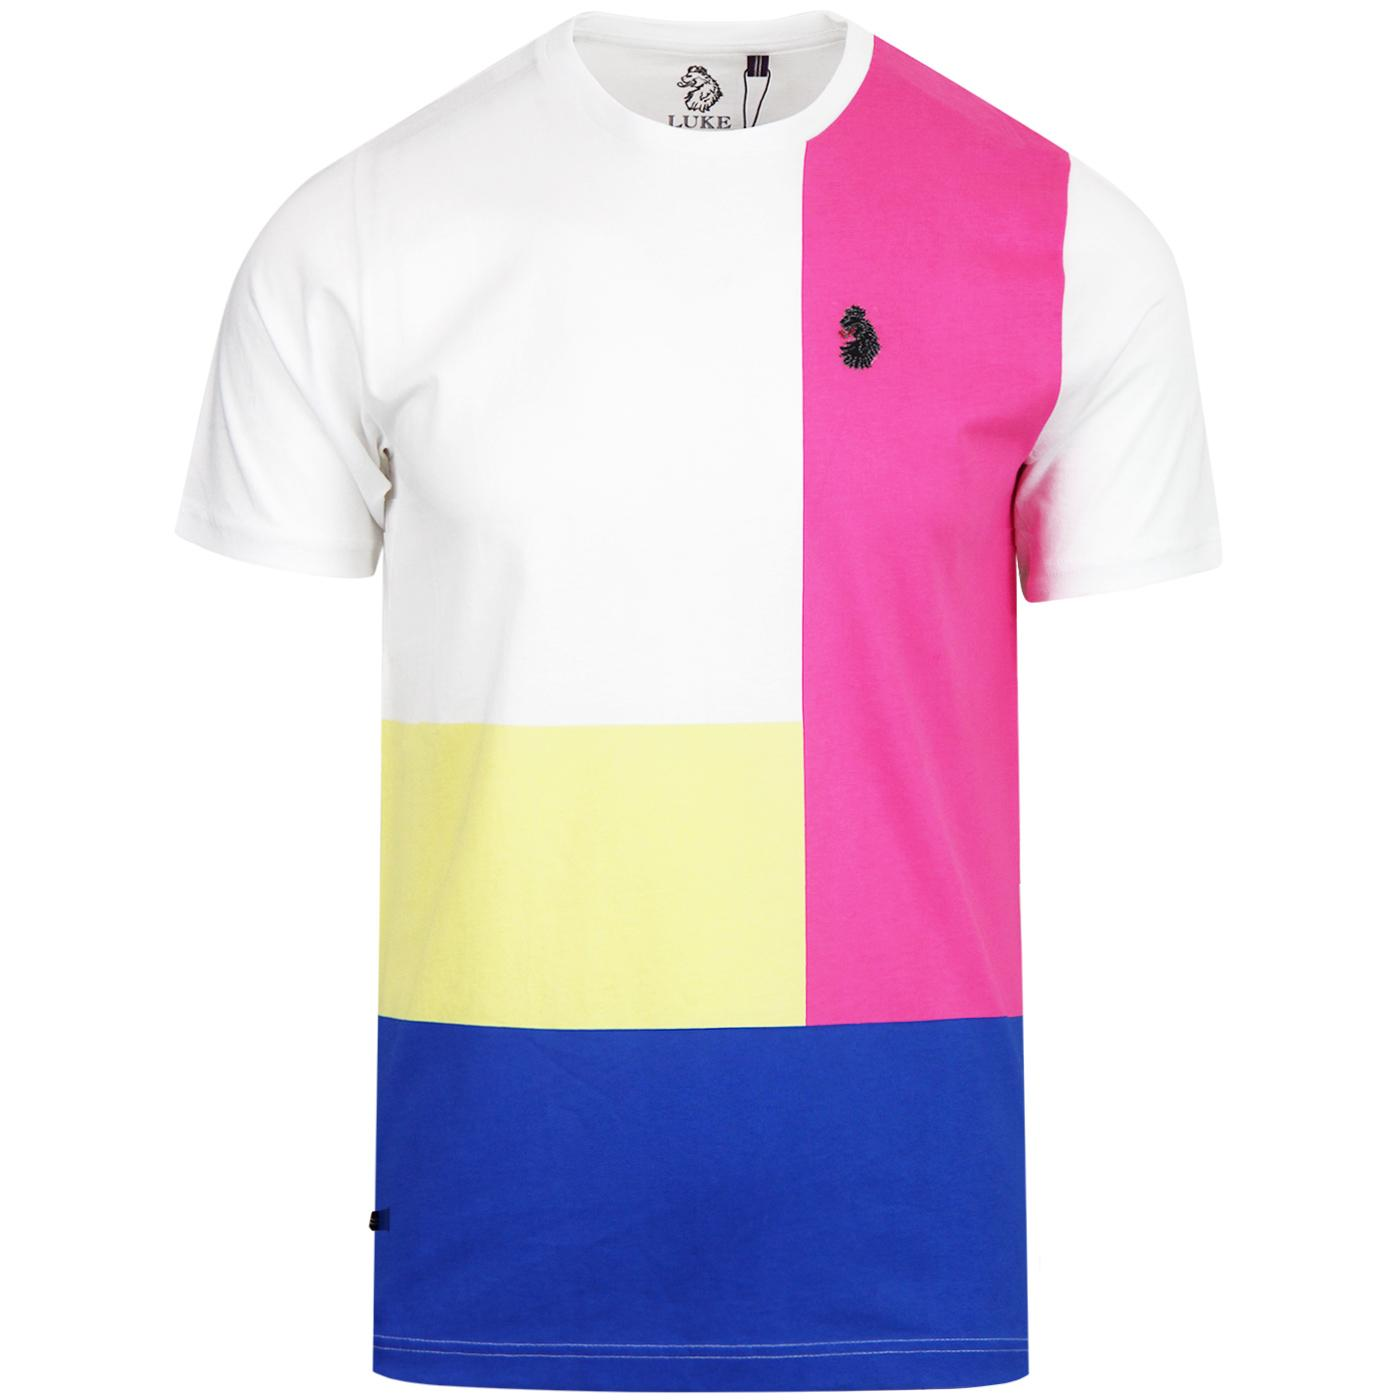 Wind Close LUKE Retro Men's Colour Block T-Shirt